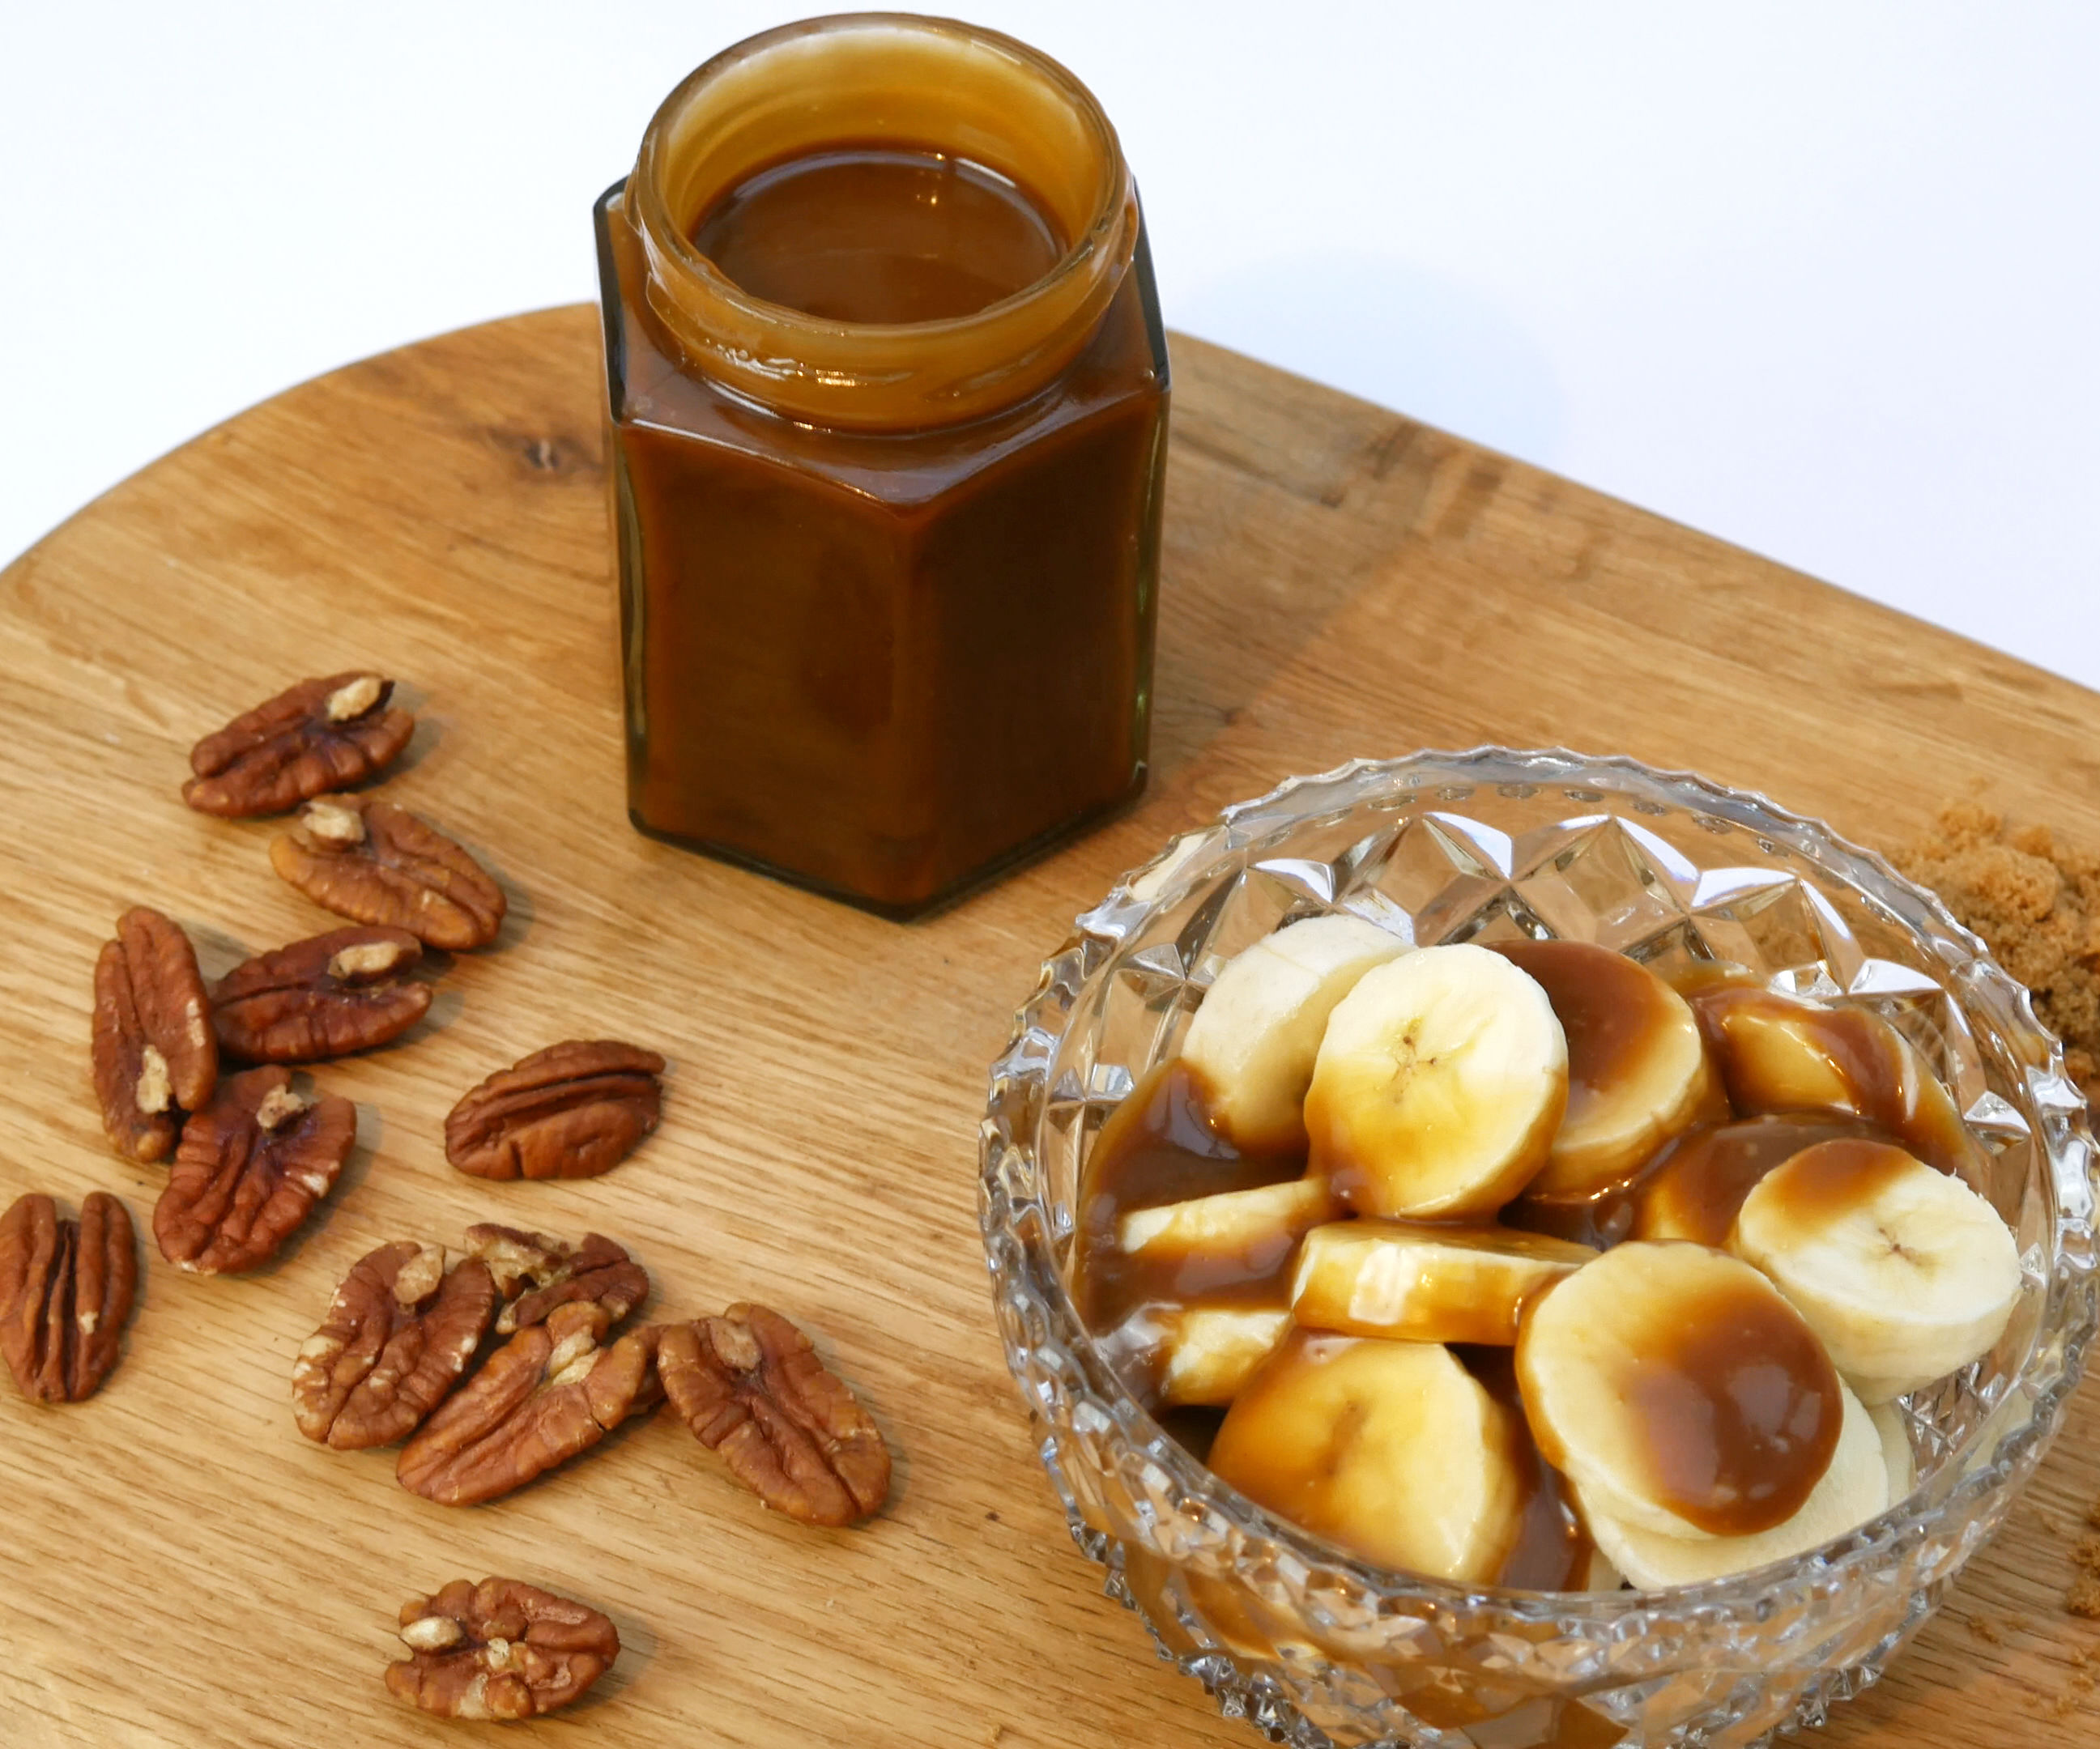 EASY HOMEMADE TOFFEE SAUCE